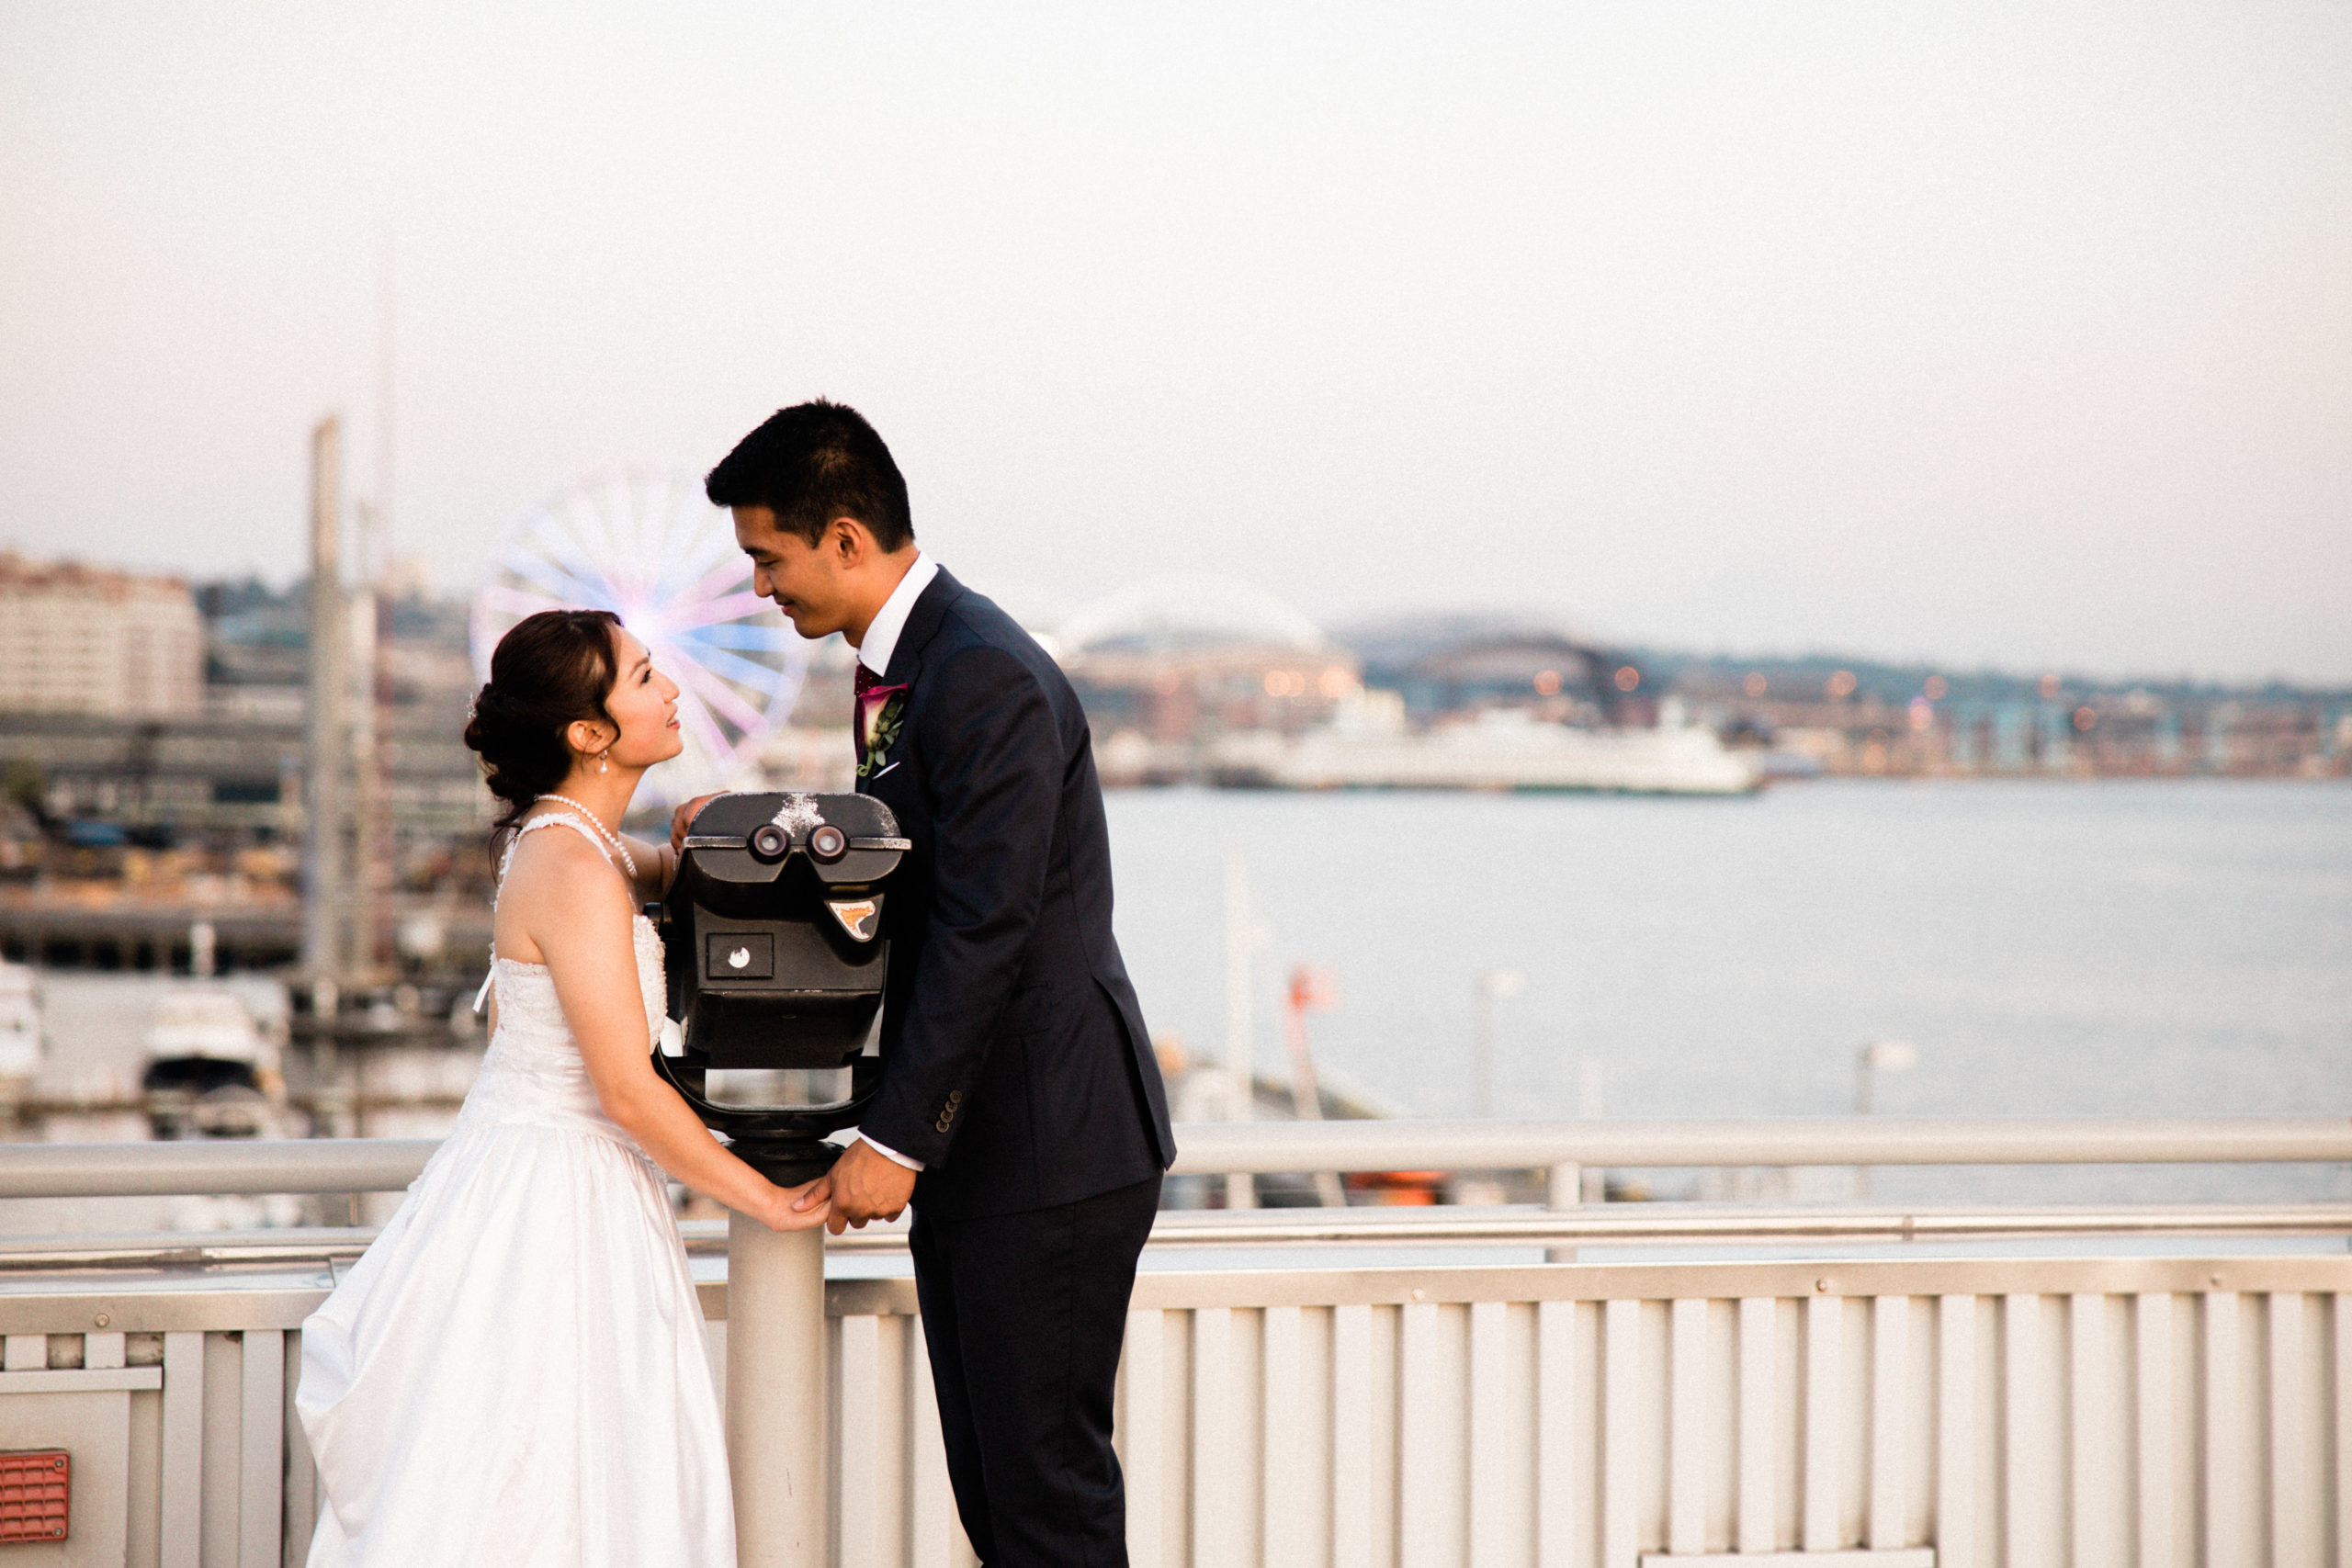 intimate portraits outside edgewater hotel wedding venue with Ferris wheel and buildings in the background